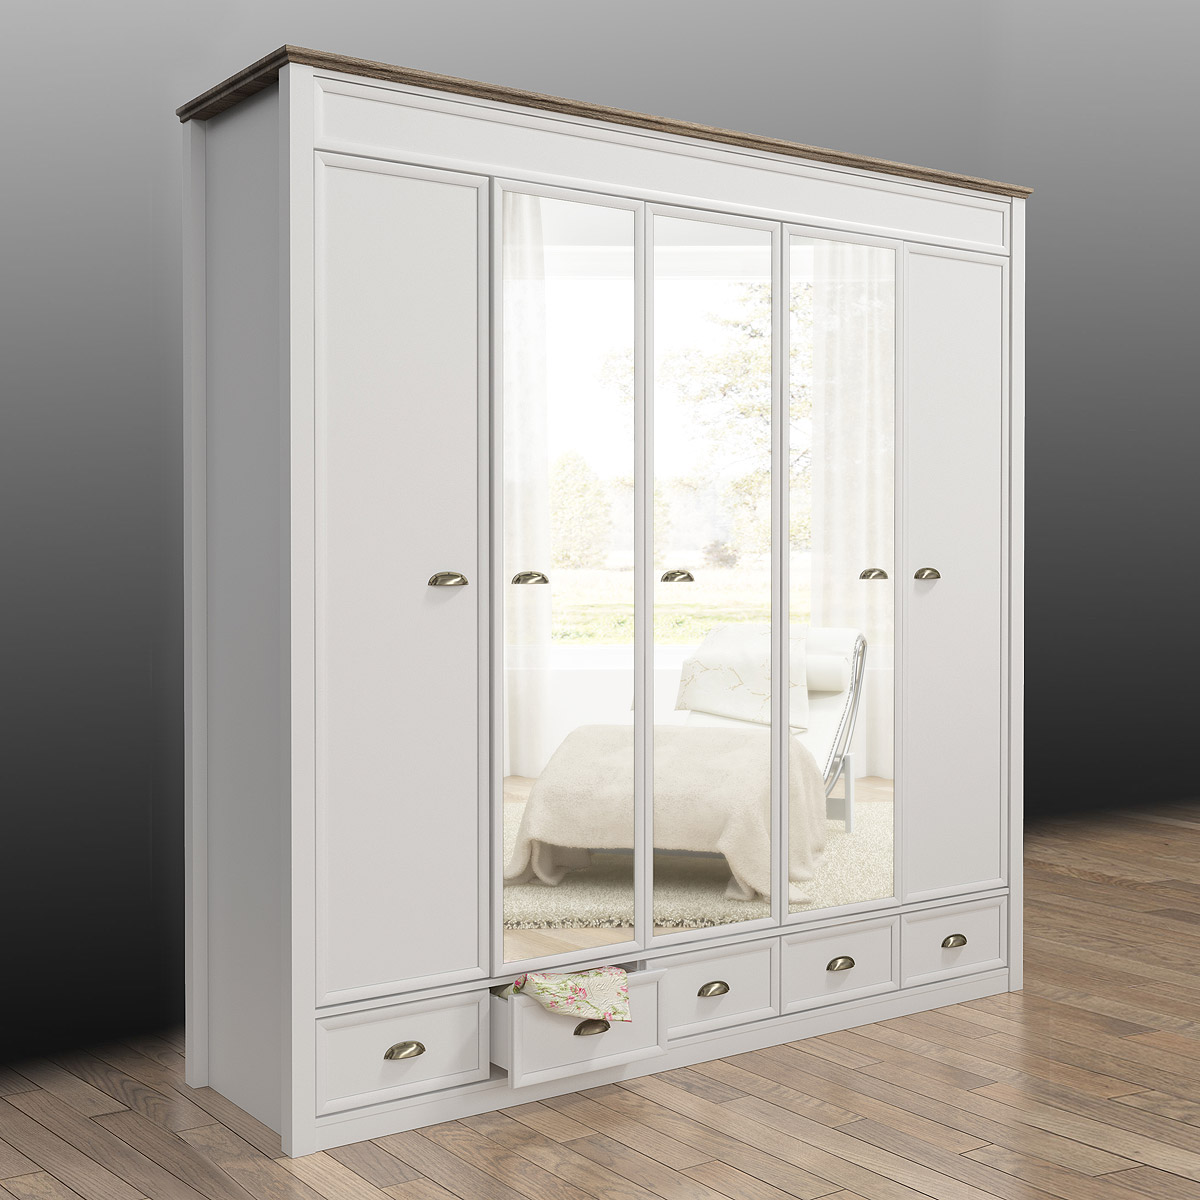 kleiderschrank chateau schrank schlafzimmerschrank wei san remo eiche 220 ebay. Black Bedroom Furniture Sets. Home Design Ideas